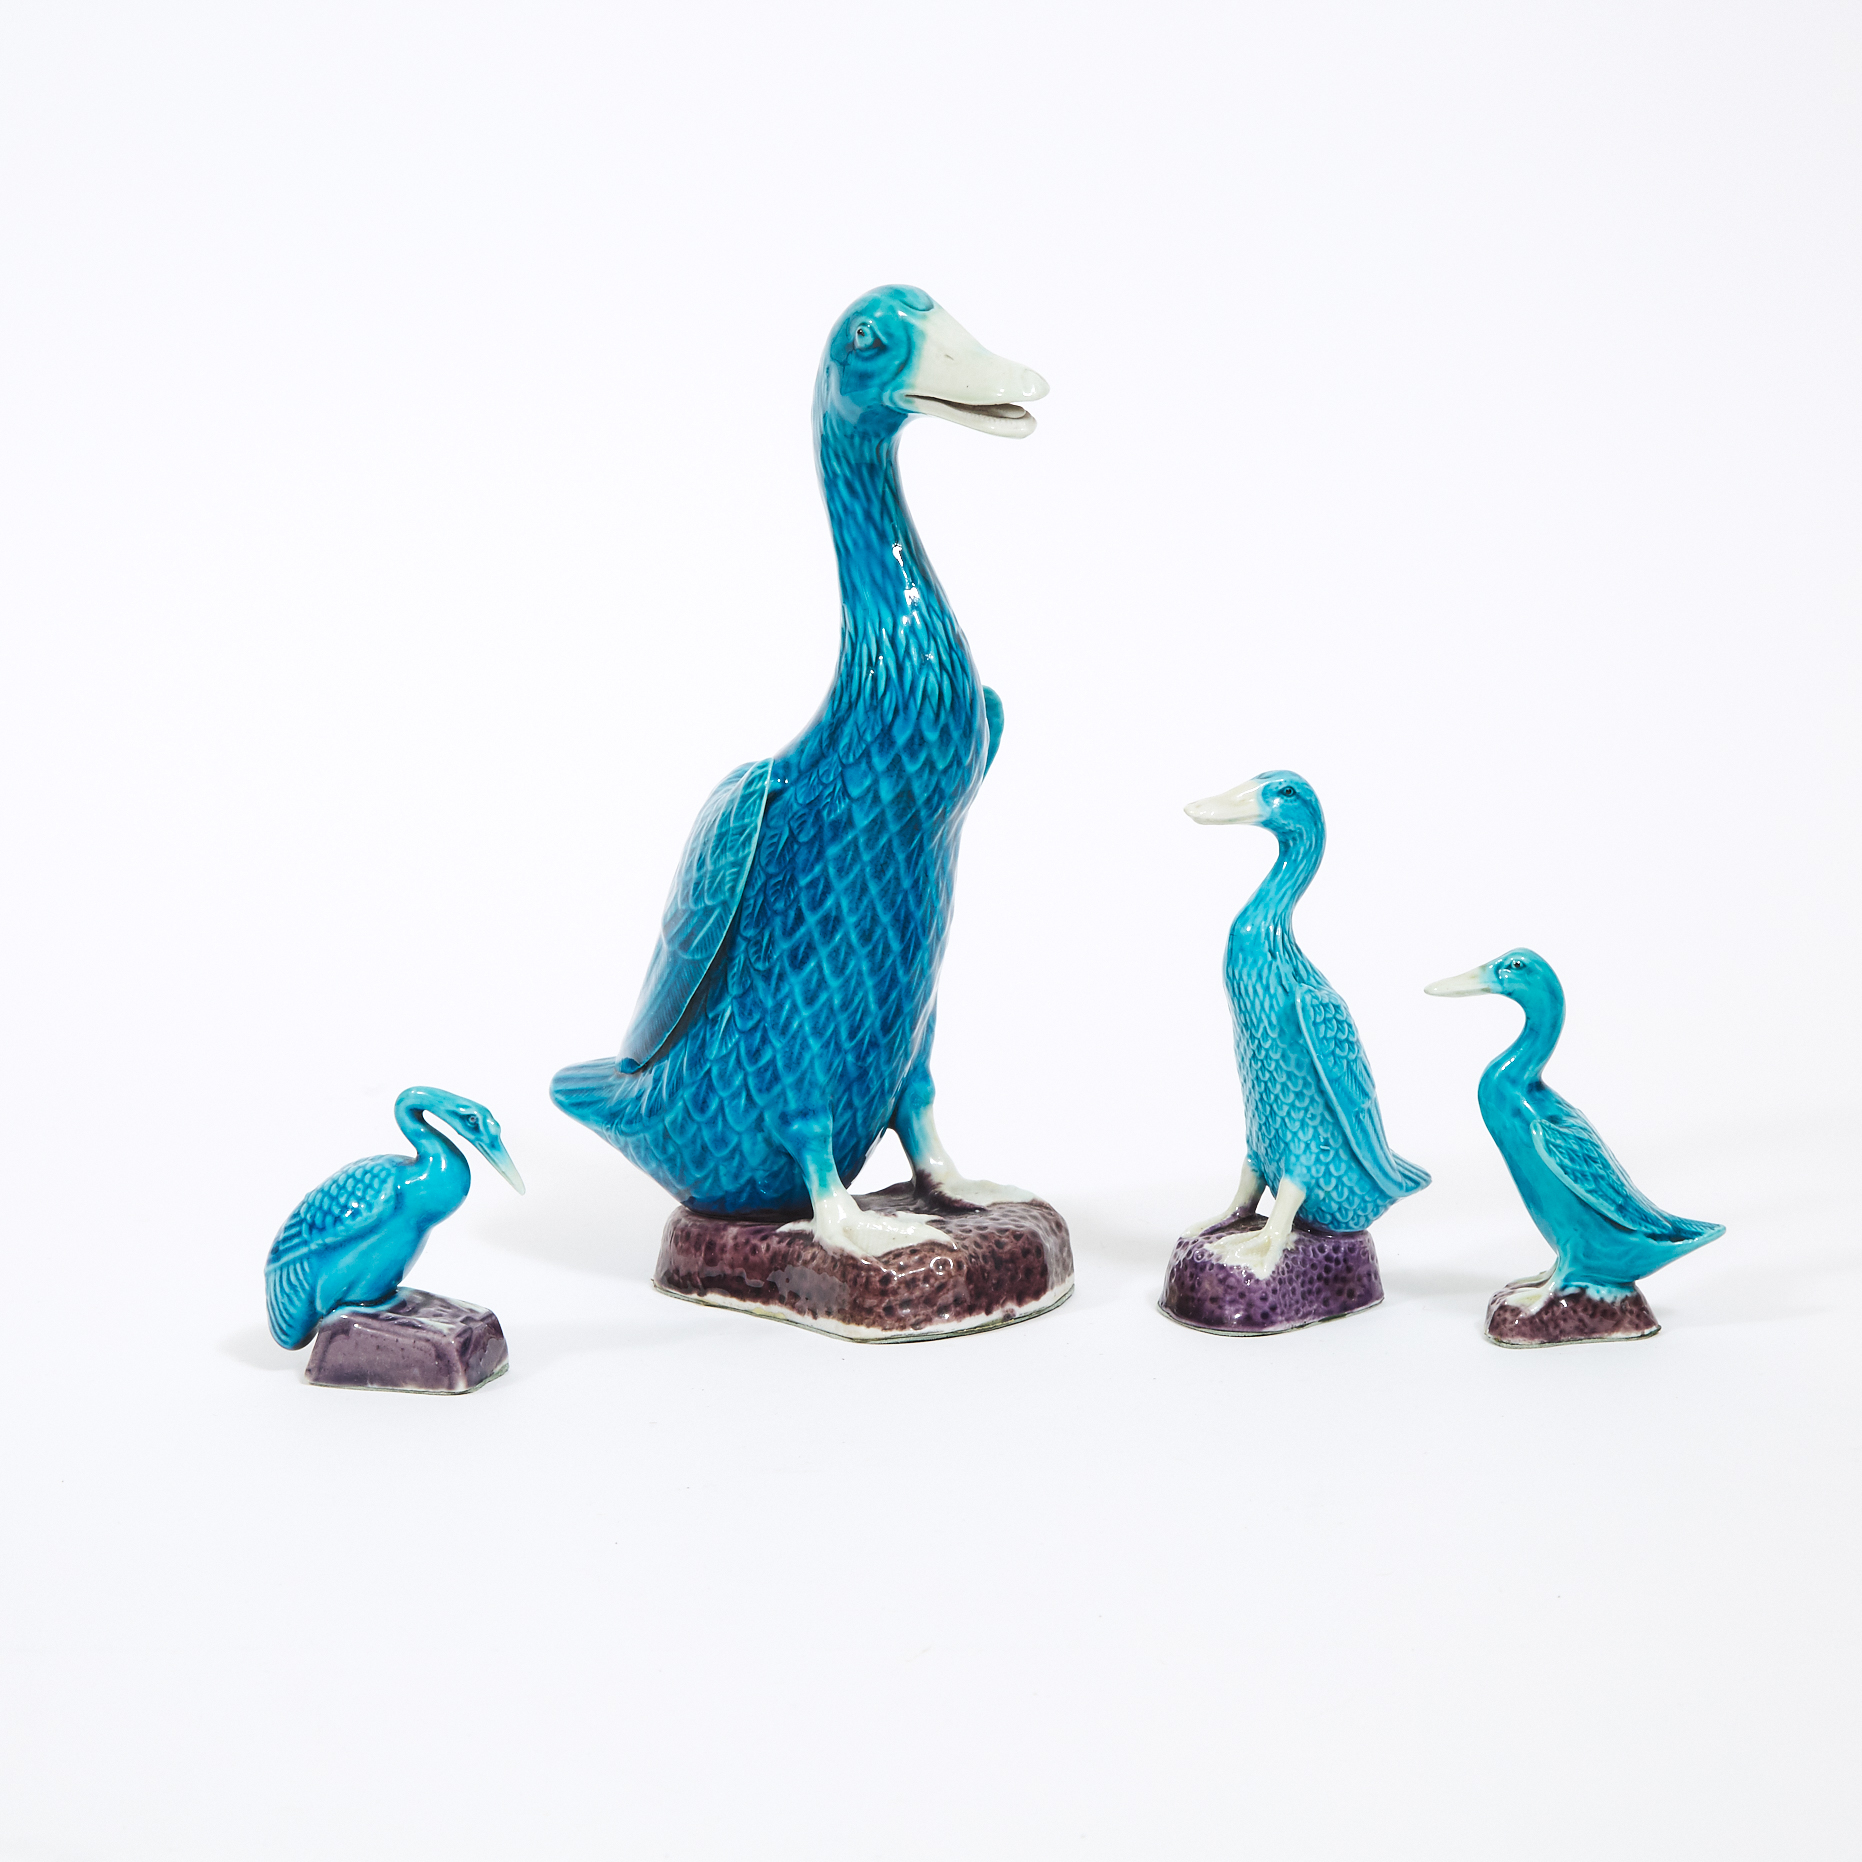 A Group of Four Turquoise Glazed Chinese Export Ducks, Late Qing Dynasty